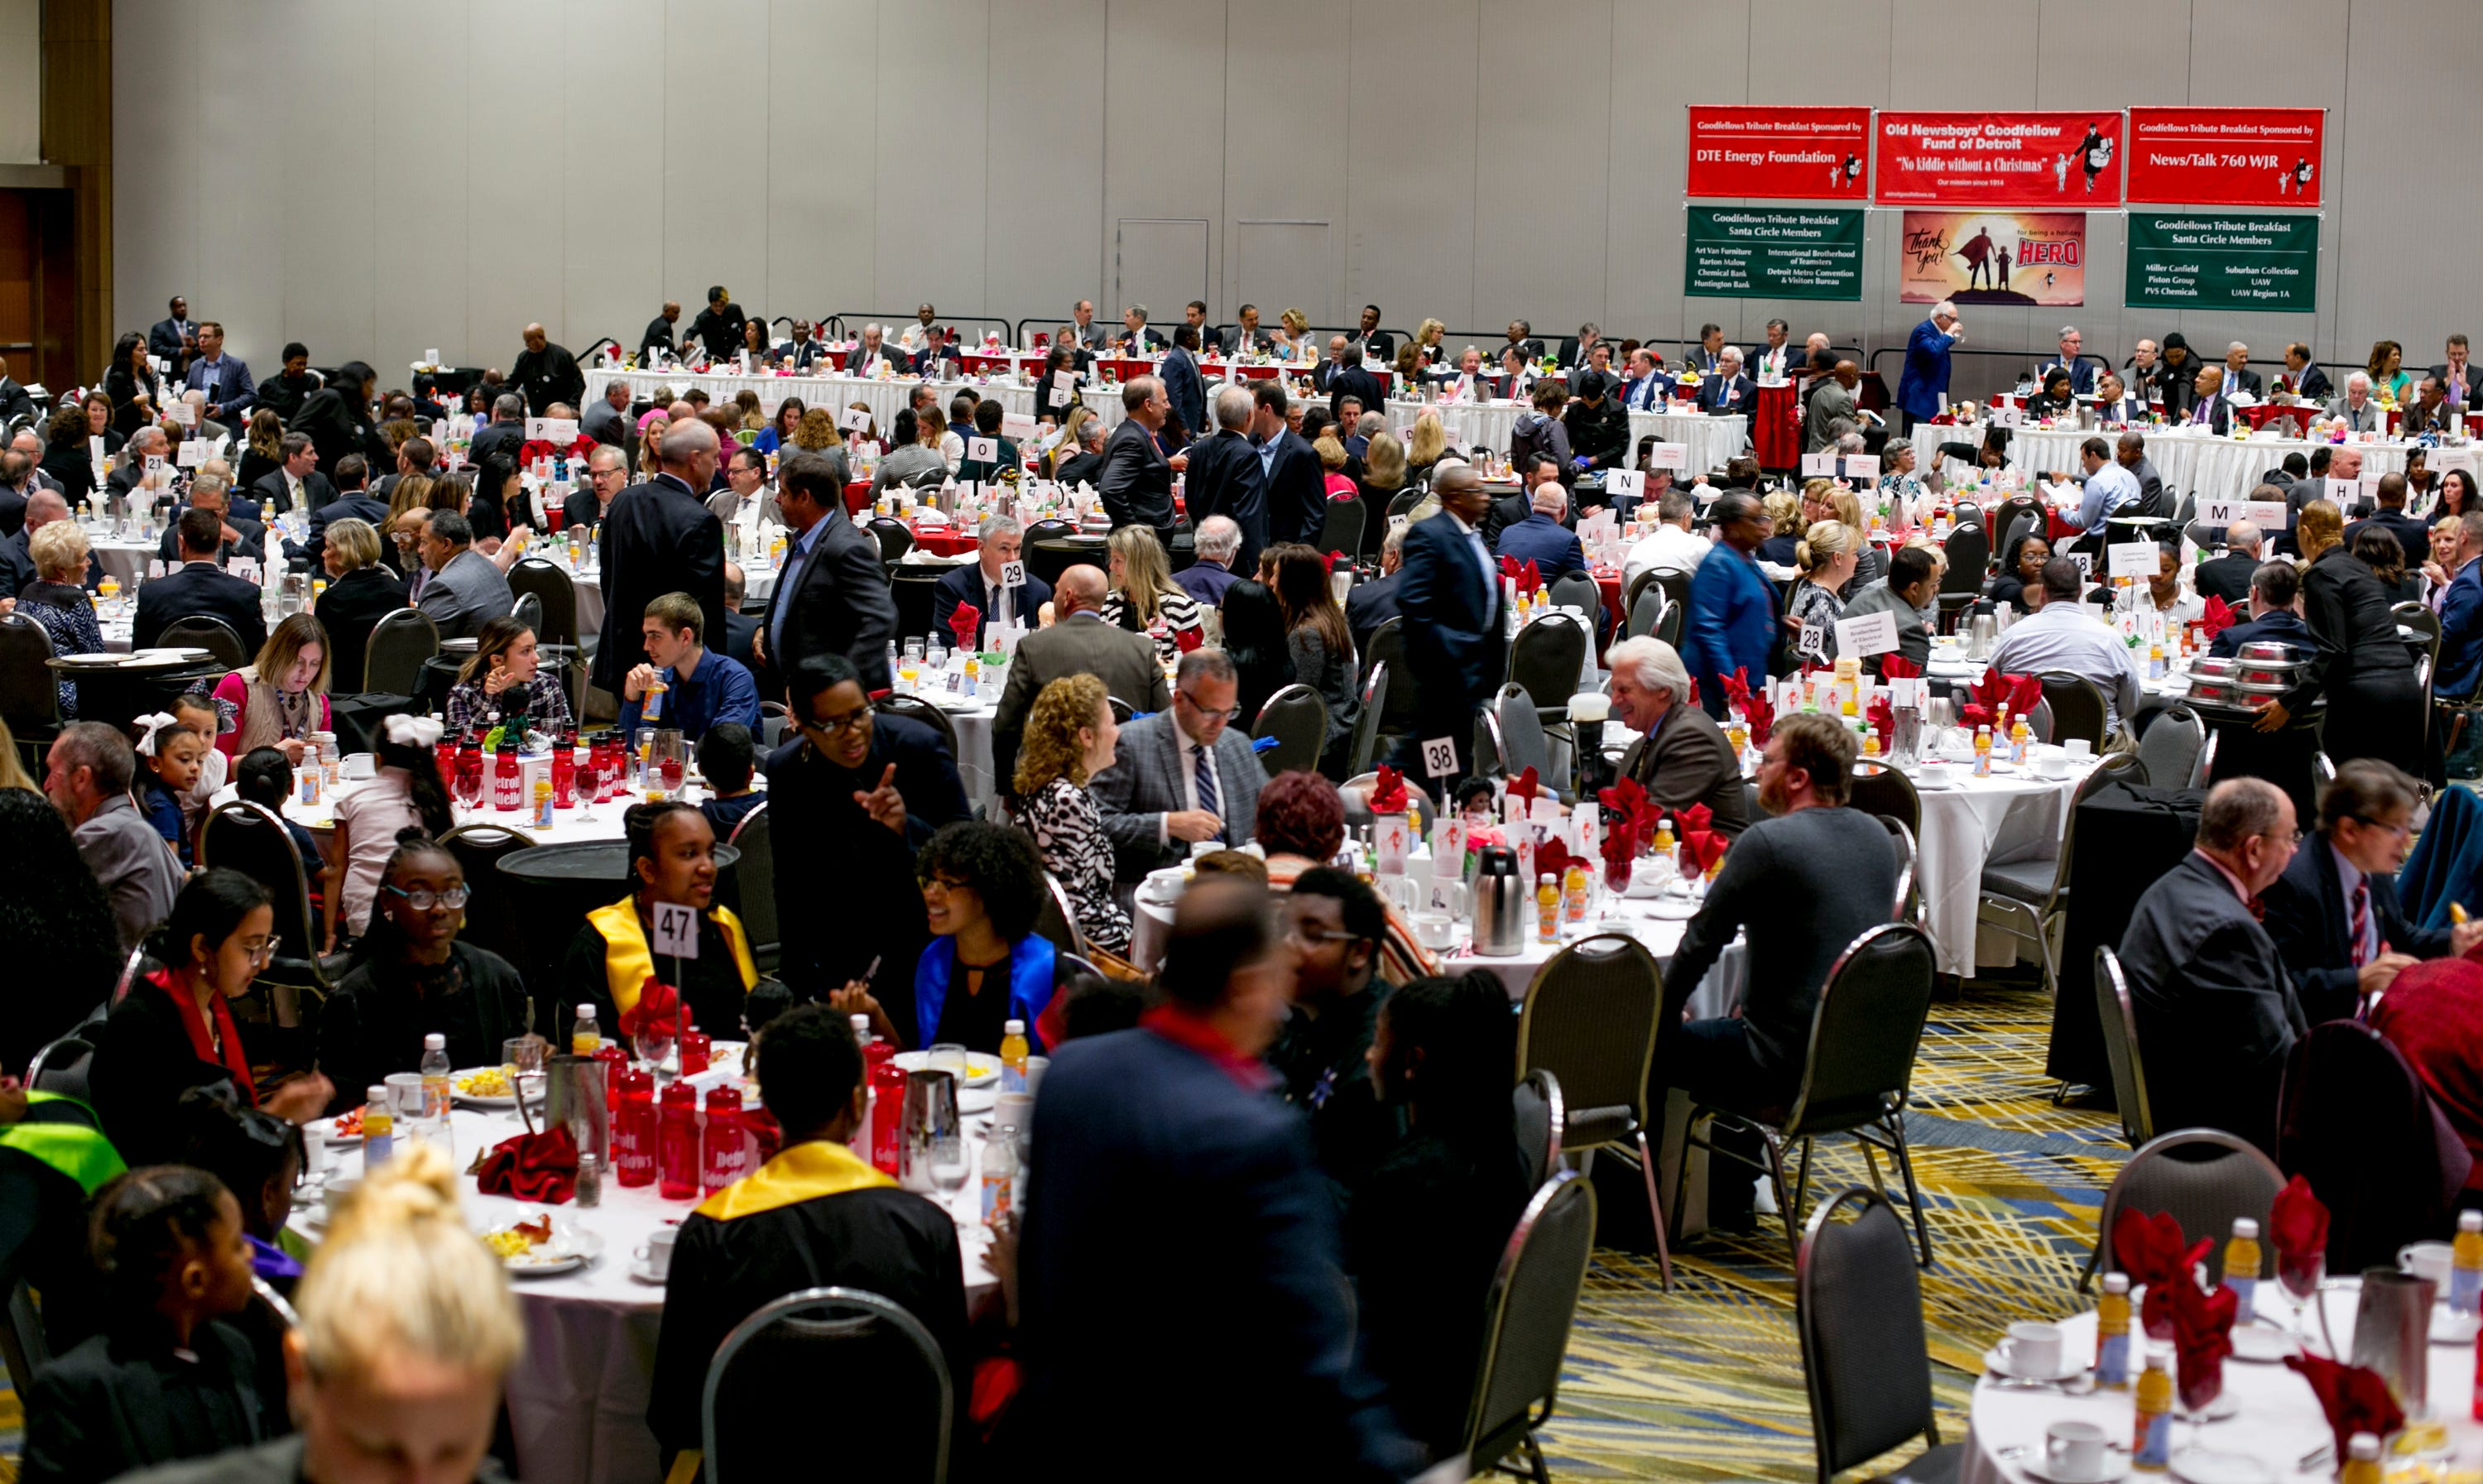 A crowd fills the room at Cobo Center for  the Detroit Goodfellows Annual Tribute Breakfast XXIX.